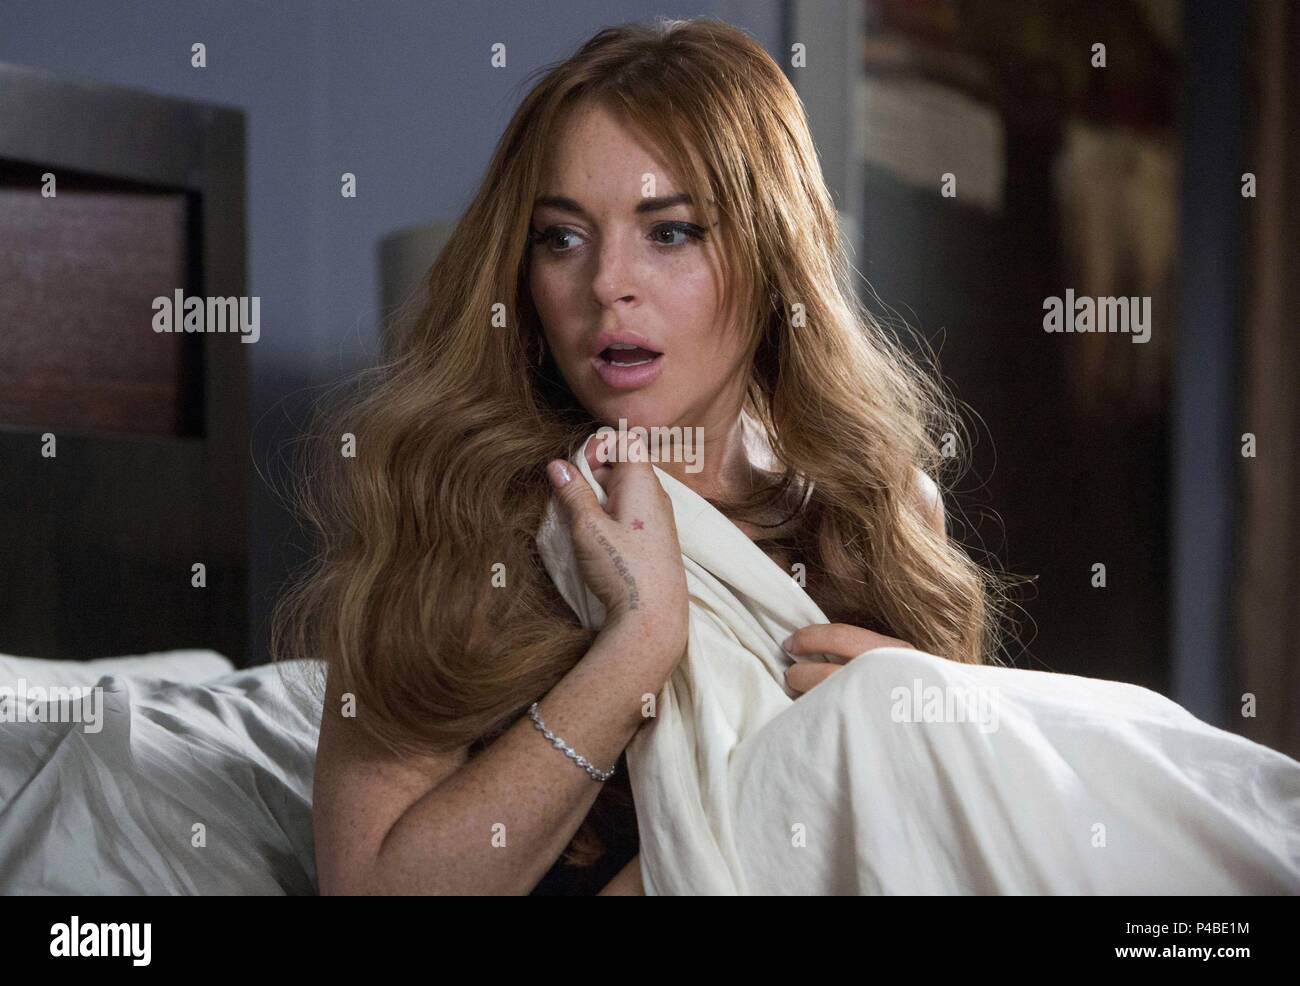 Original Film Title Scary Movie 5 English Title Scary Movie 5 Film Director Malcolm D Lee Year 2013 Stars Lindsay Lohan Credit Dimension Films Album Stock Photo Alamy